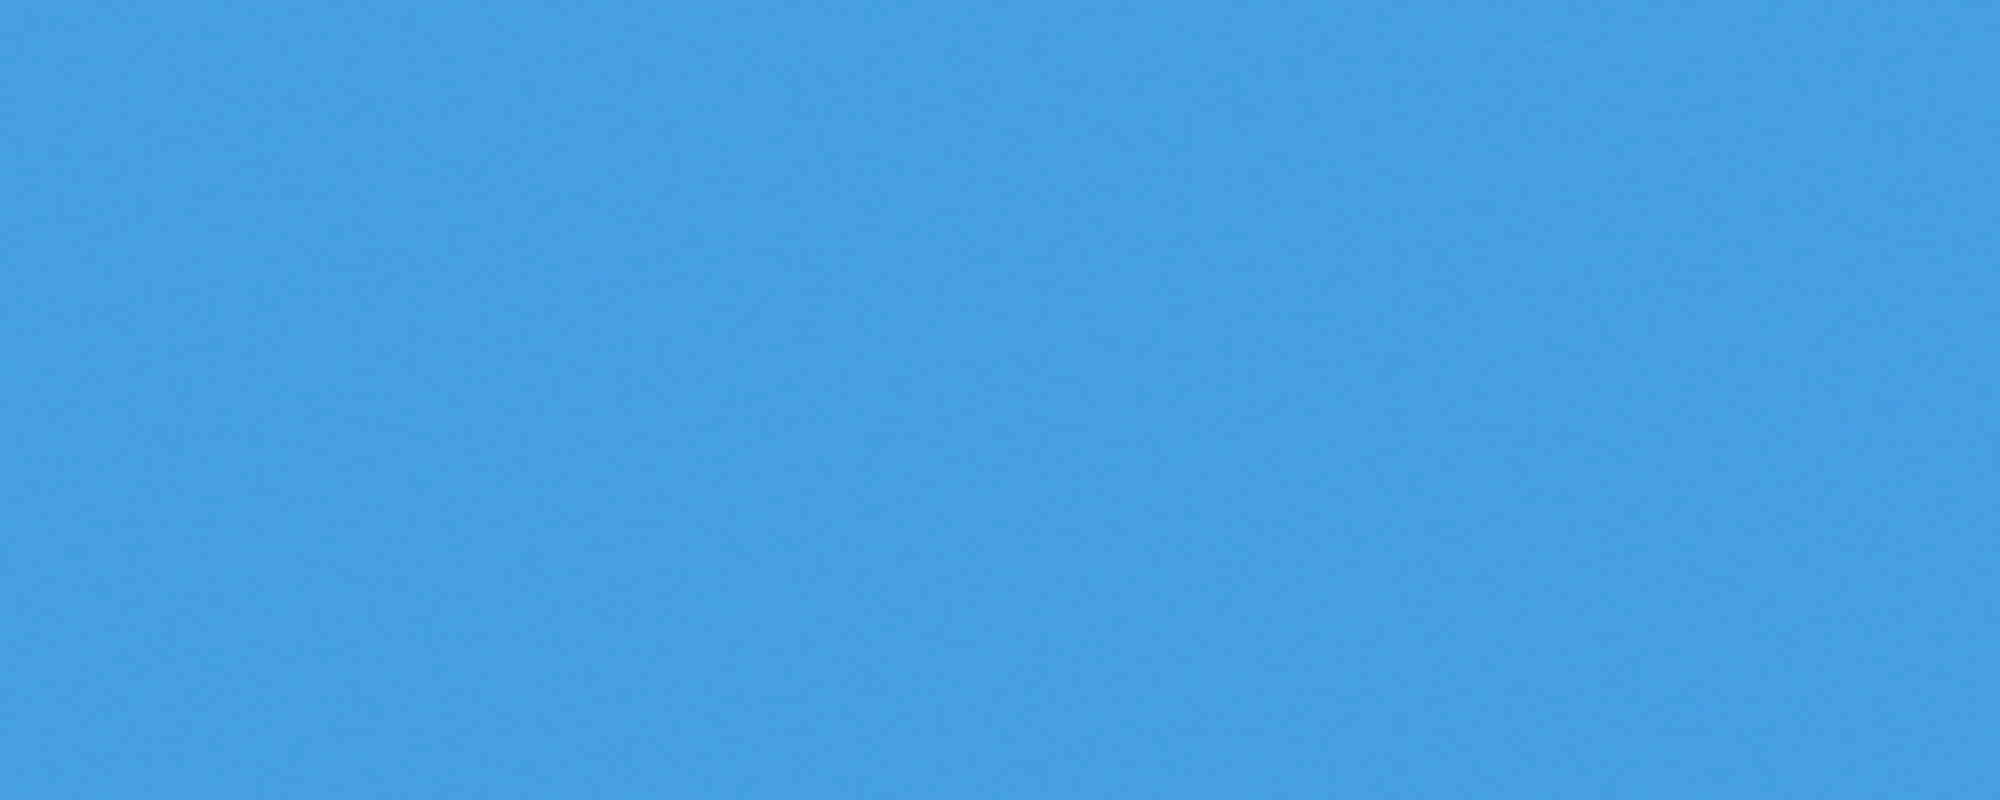 light-blue-background-lp